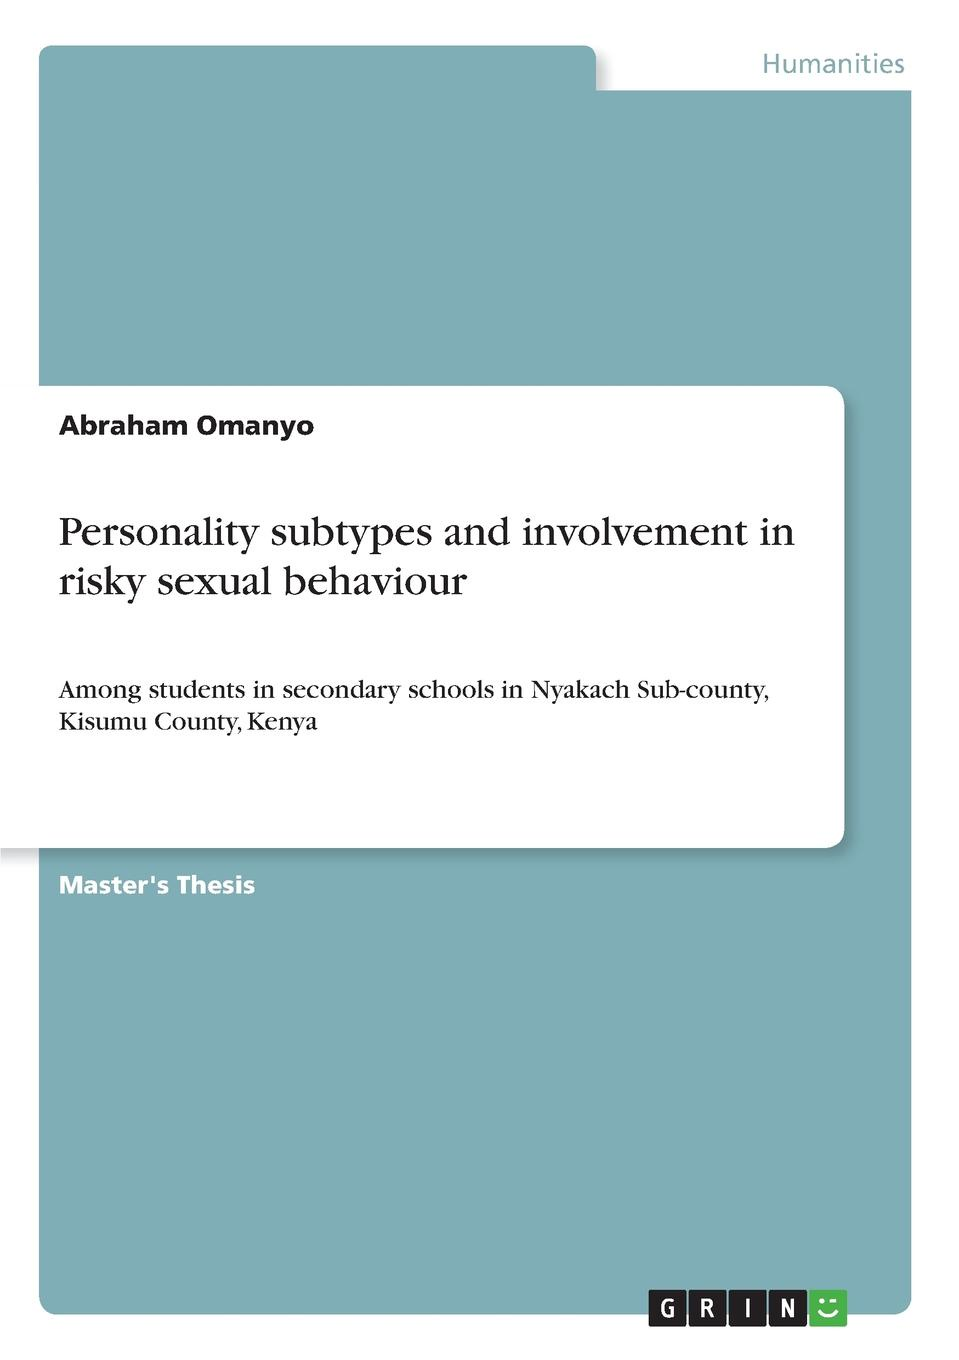 Abraham Omanyo Personality subtypes and involvement in risky sexual behaviour handbook of research methods in social and personality psychology